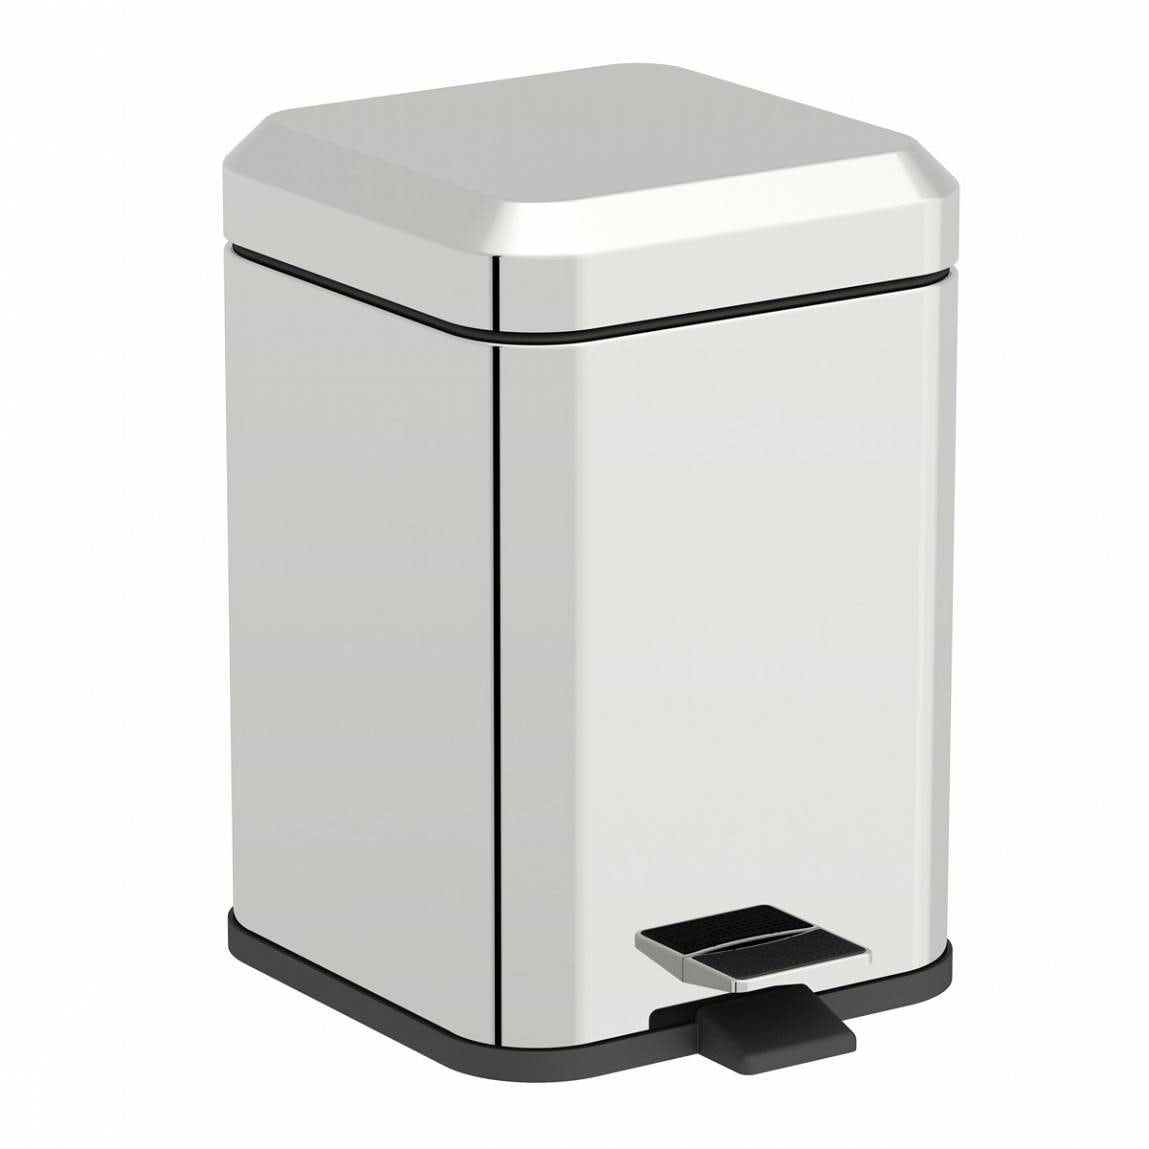 Orchard Options square stainless steel bathroom bin 5 litre